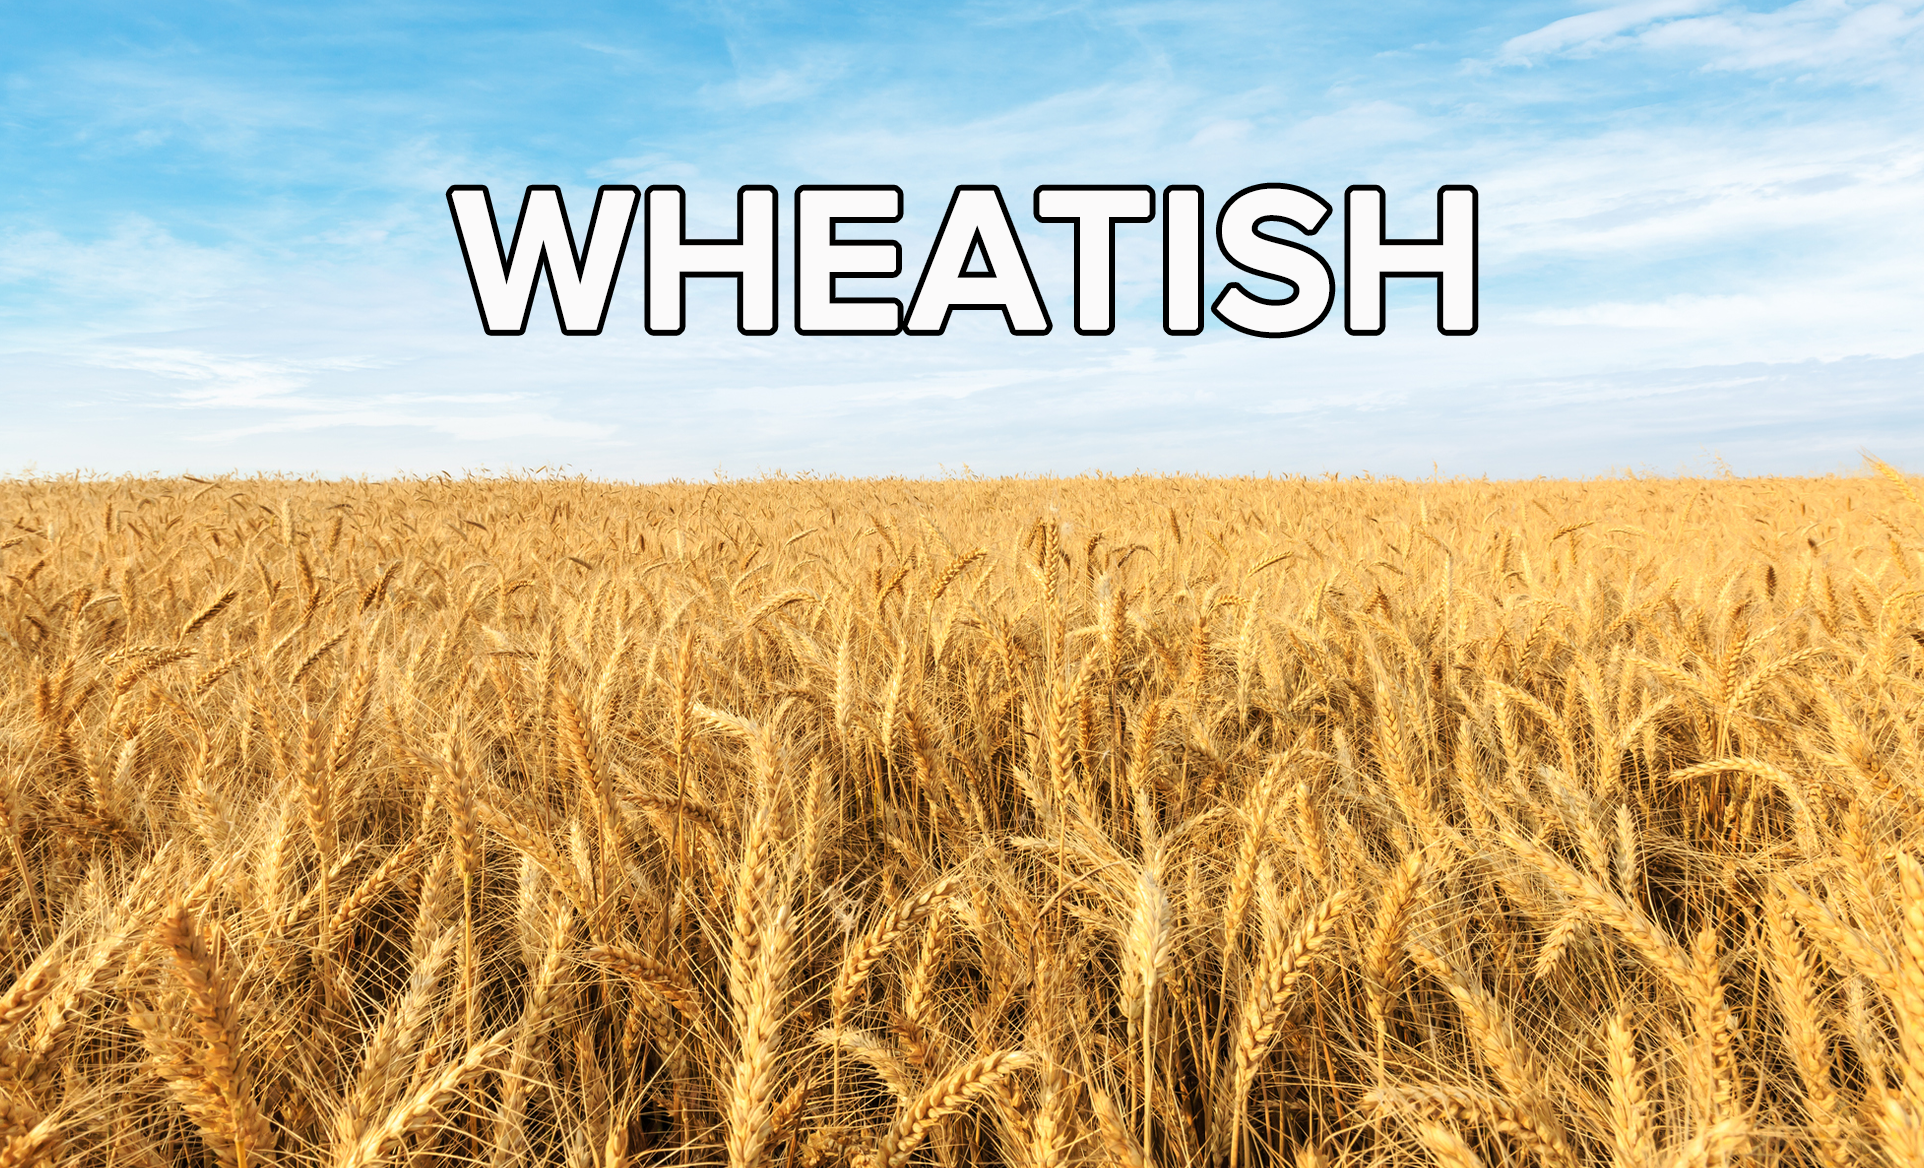 A wheat field on a sunny day